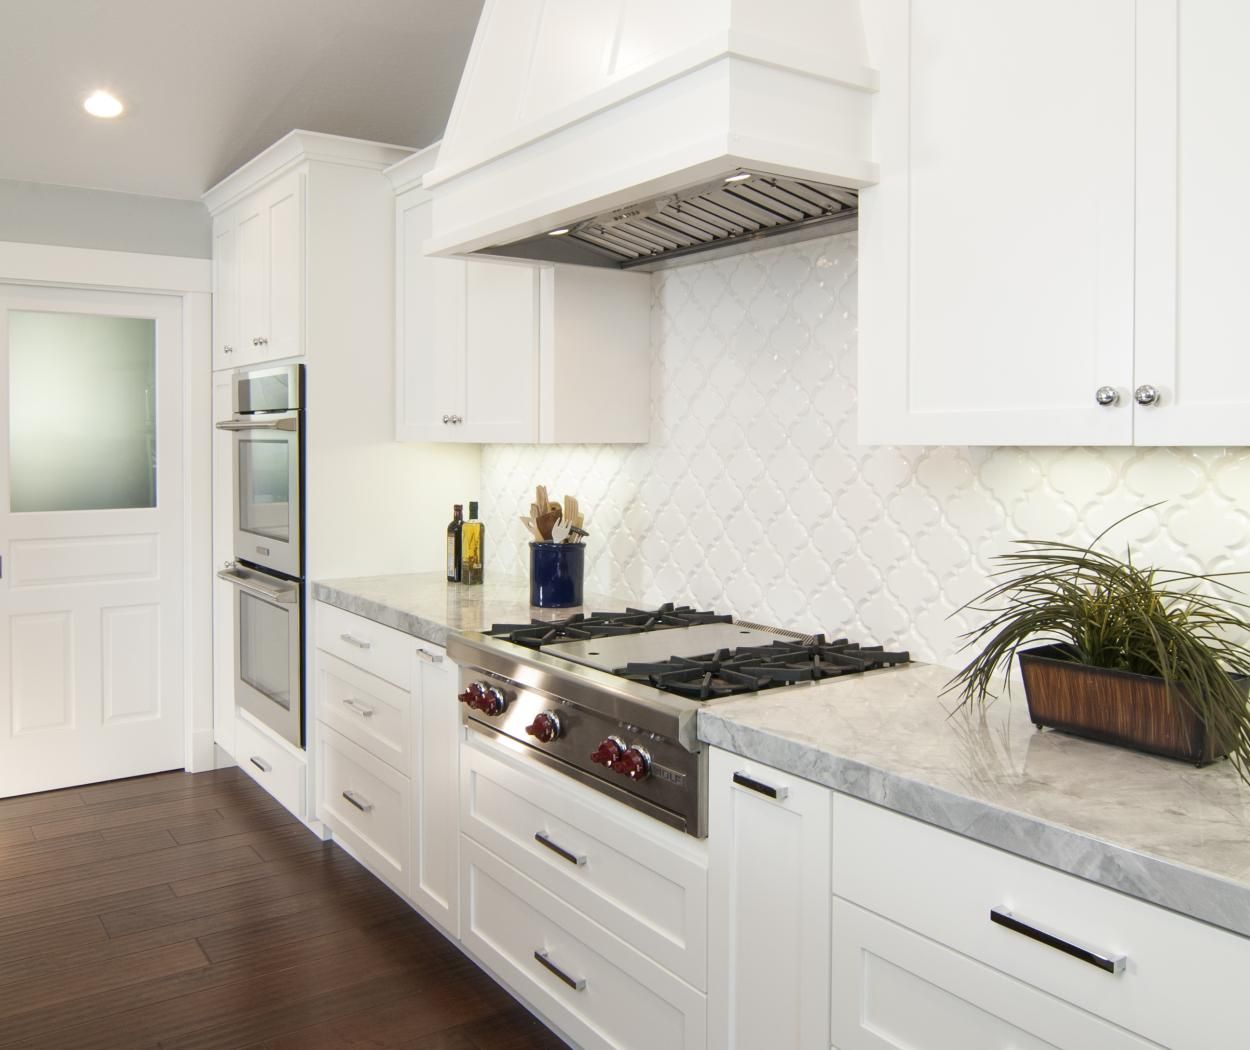 White Transitional, Shaker Style Kitchen with Beautiful Marble Countertops and Stainless Steel Appliances